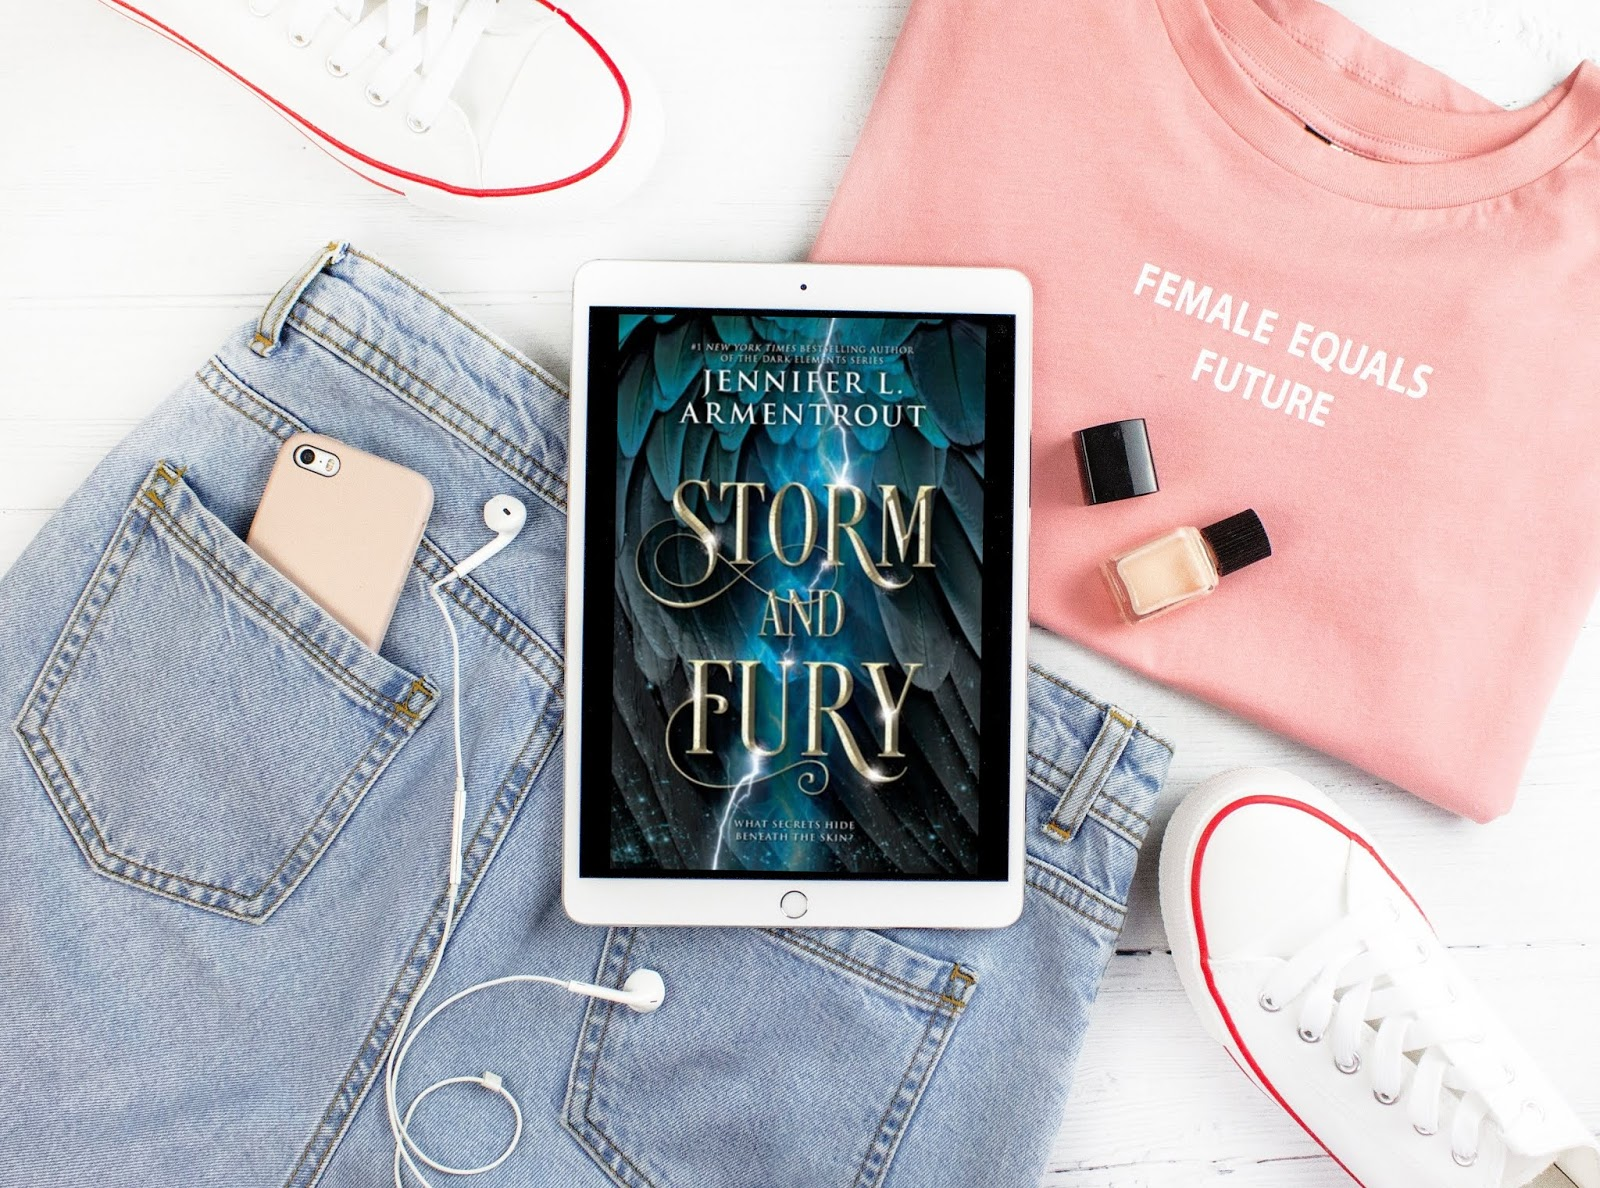 https://www.whisperingchapters.com/2019/06/storm-and-fury-by-jennifer-l-armentrout.html